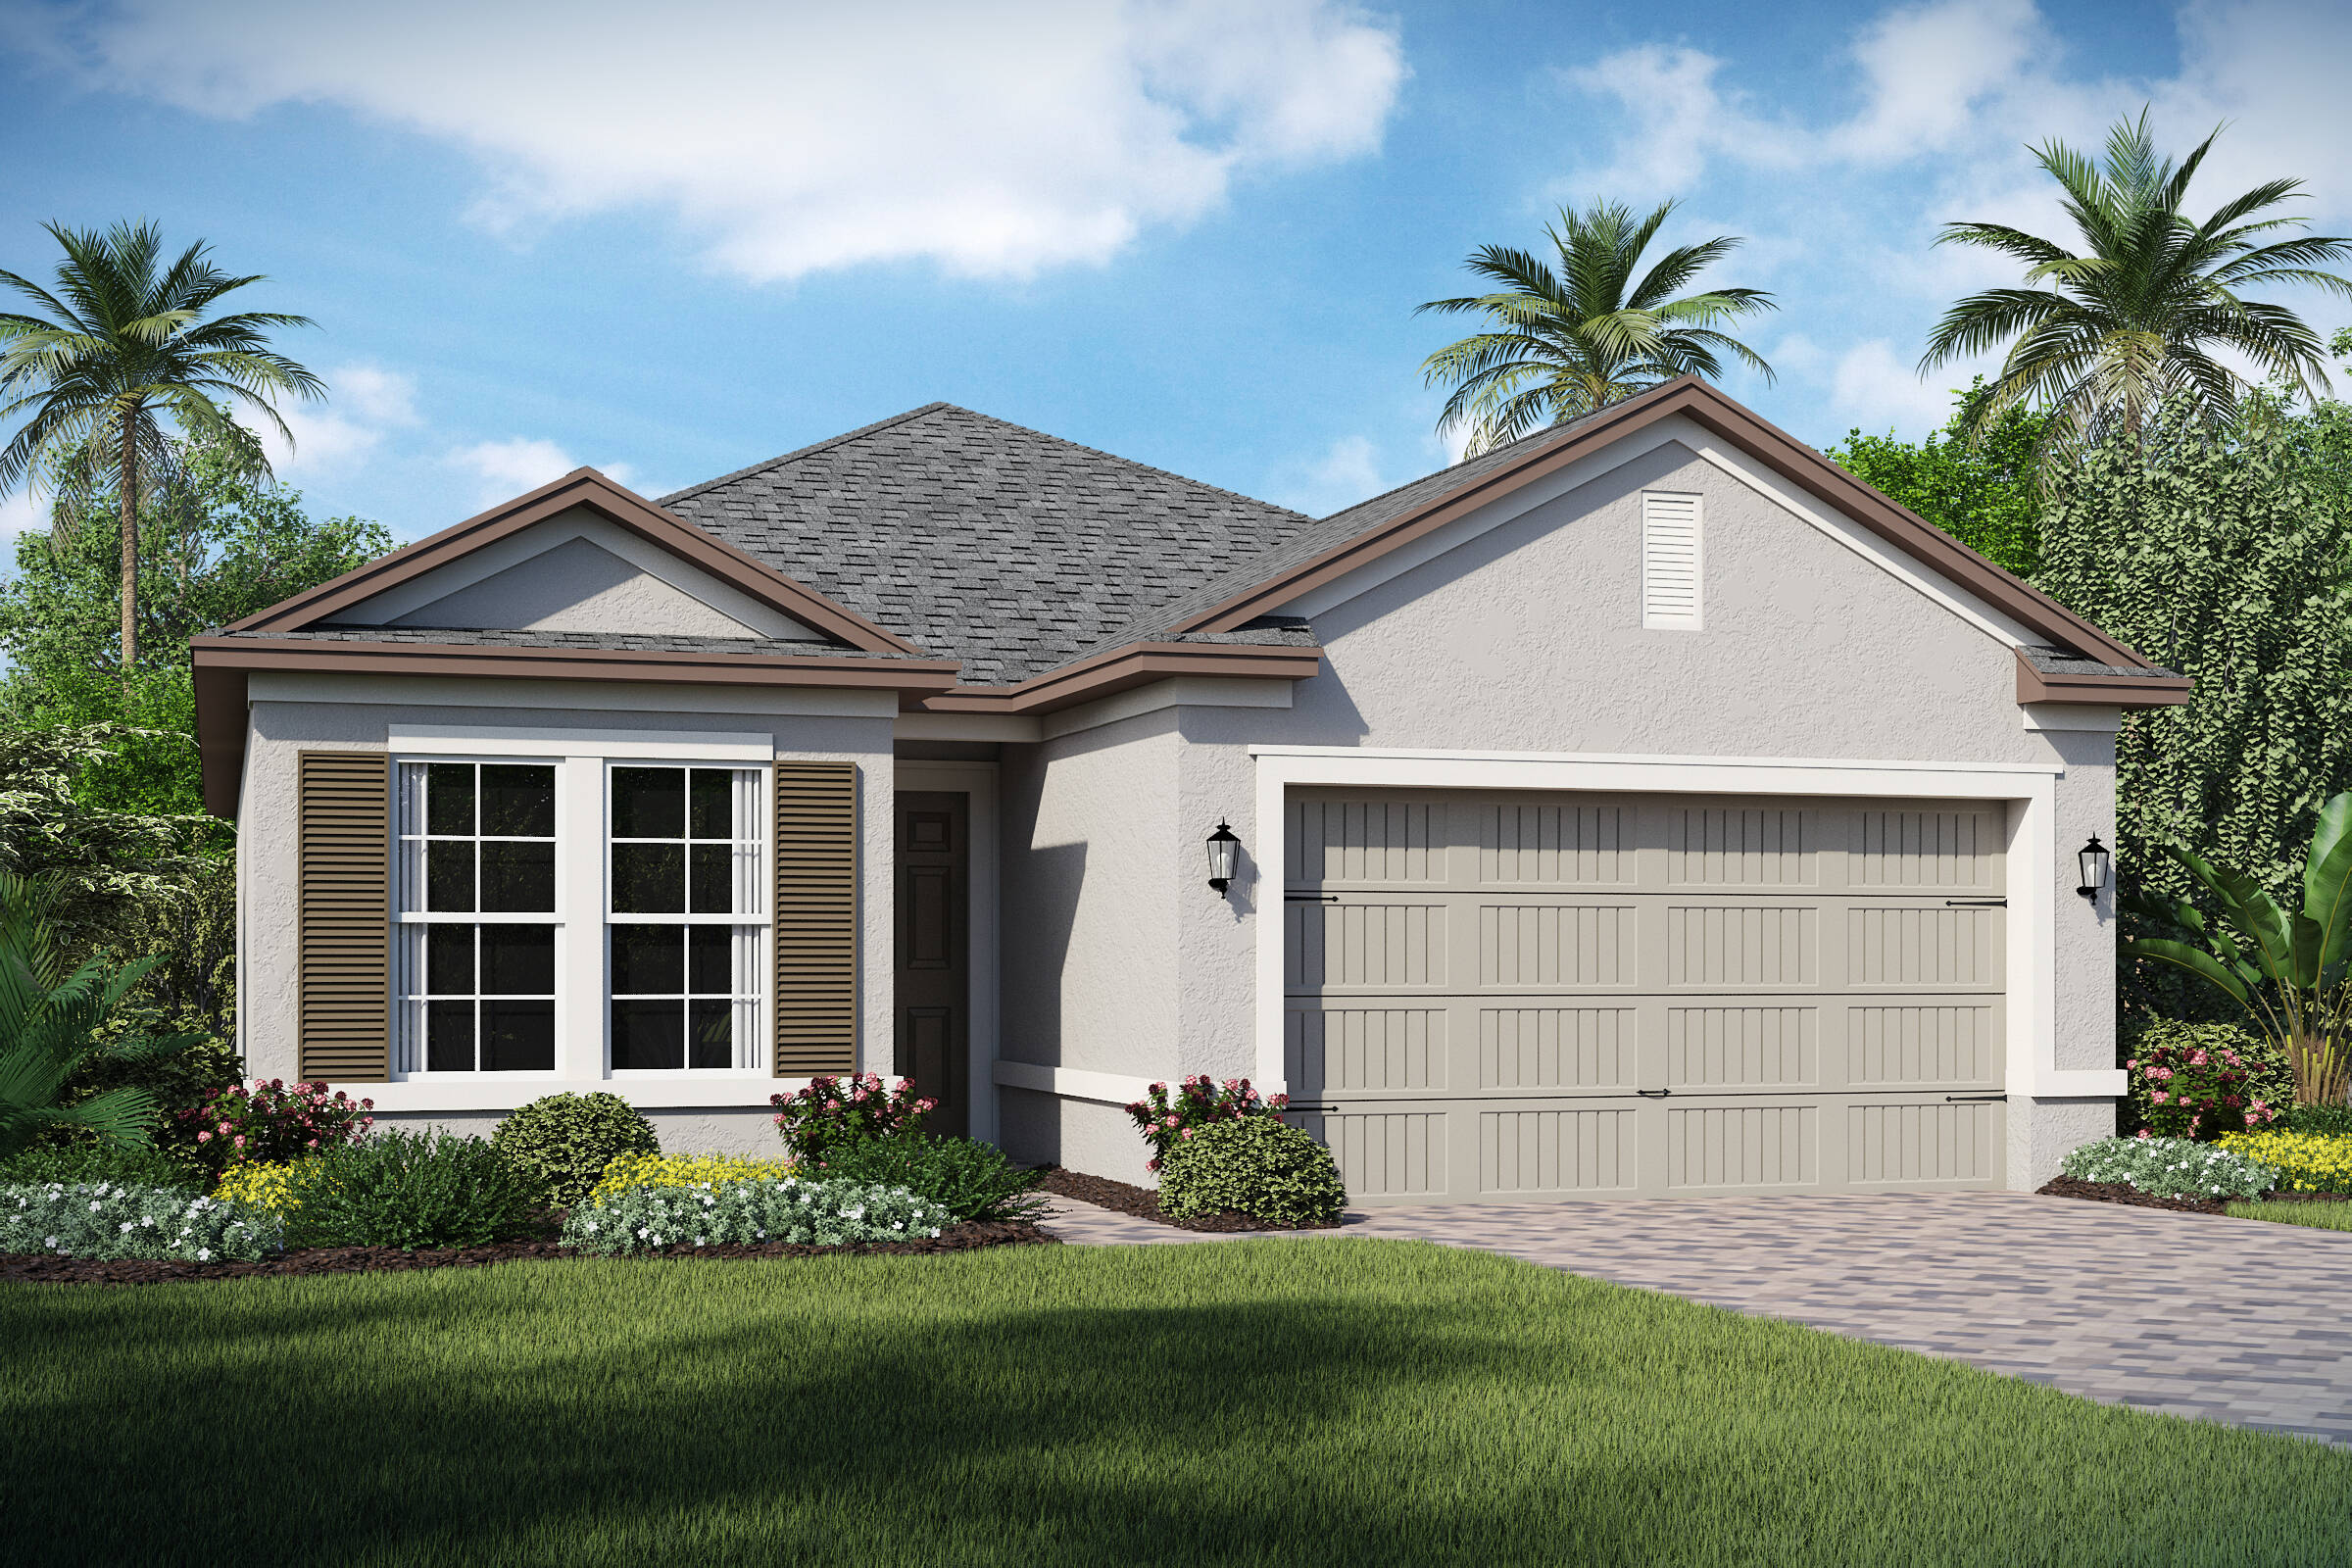 balfour-a-elev-new-homes-in-orlando